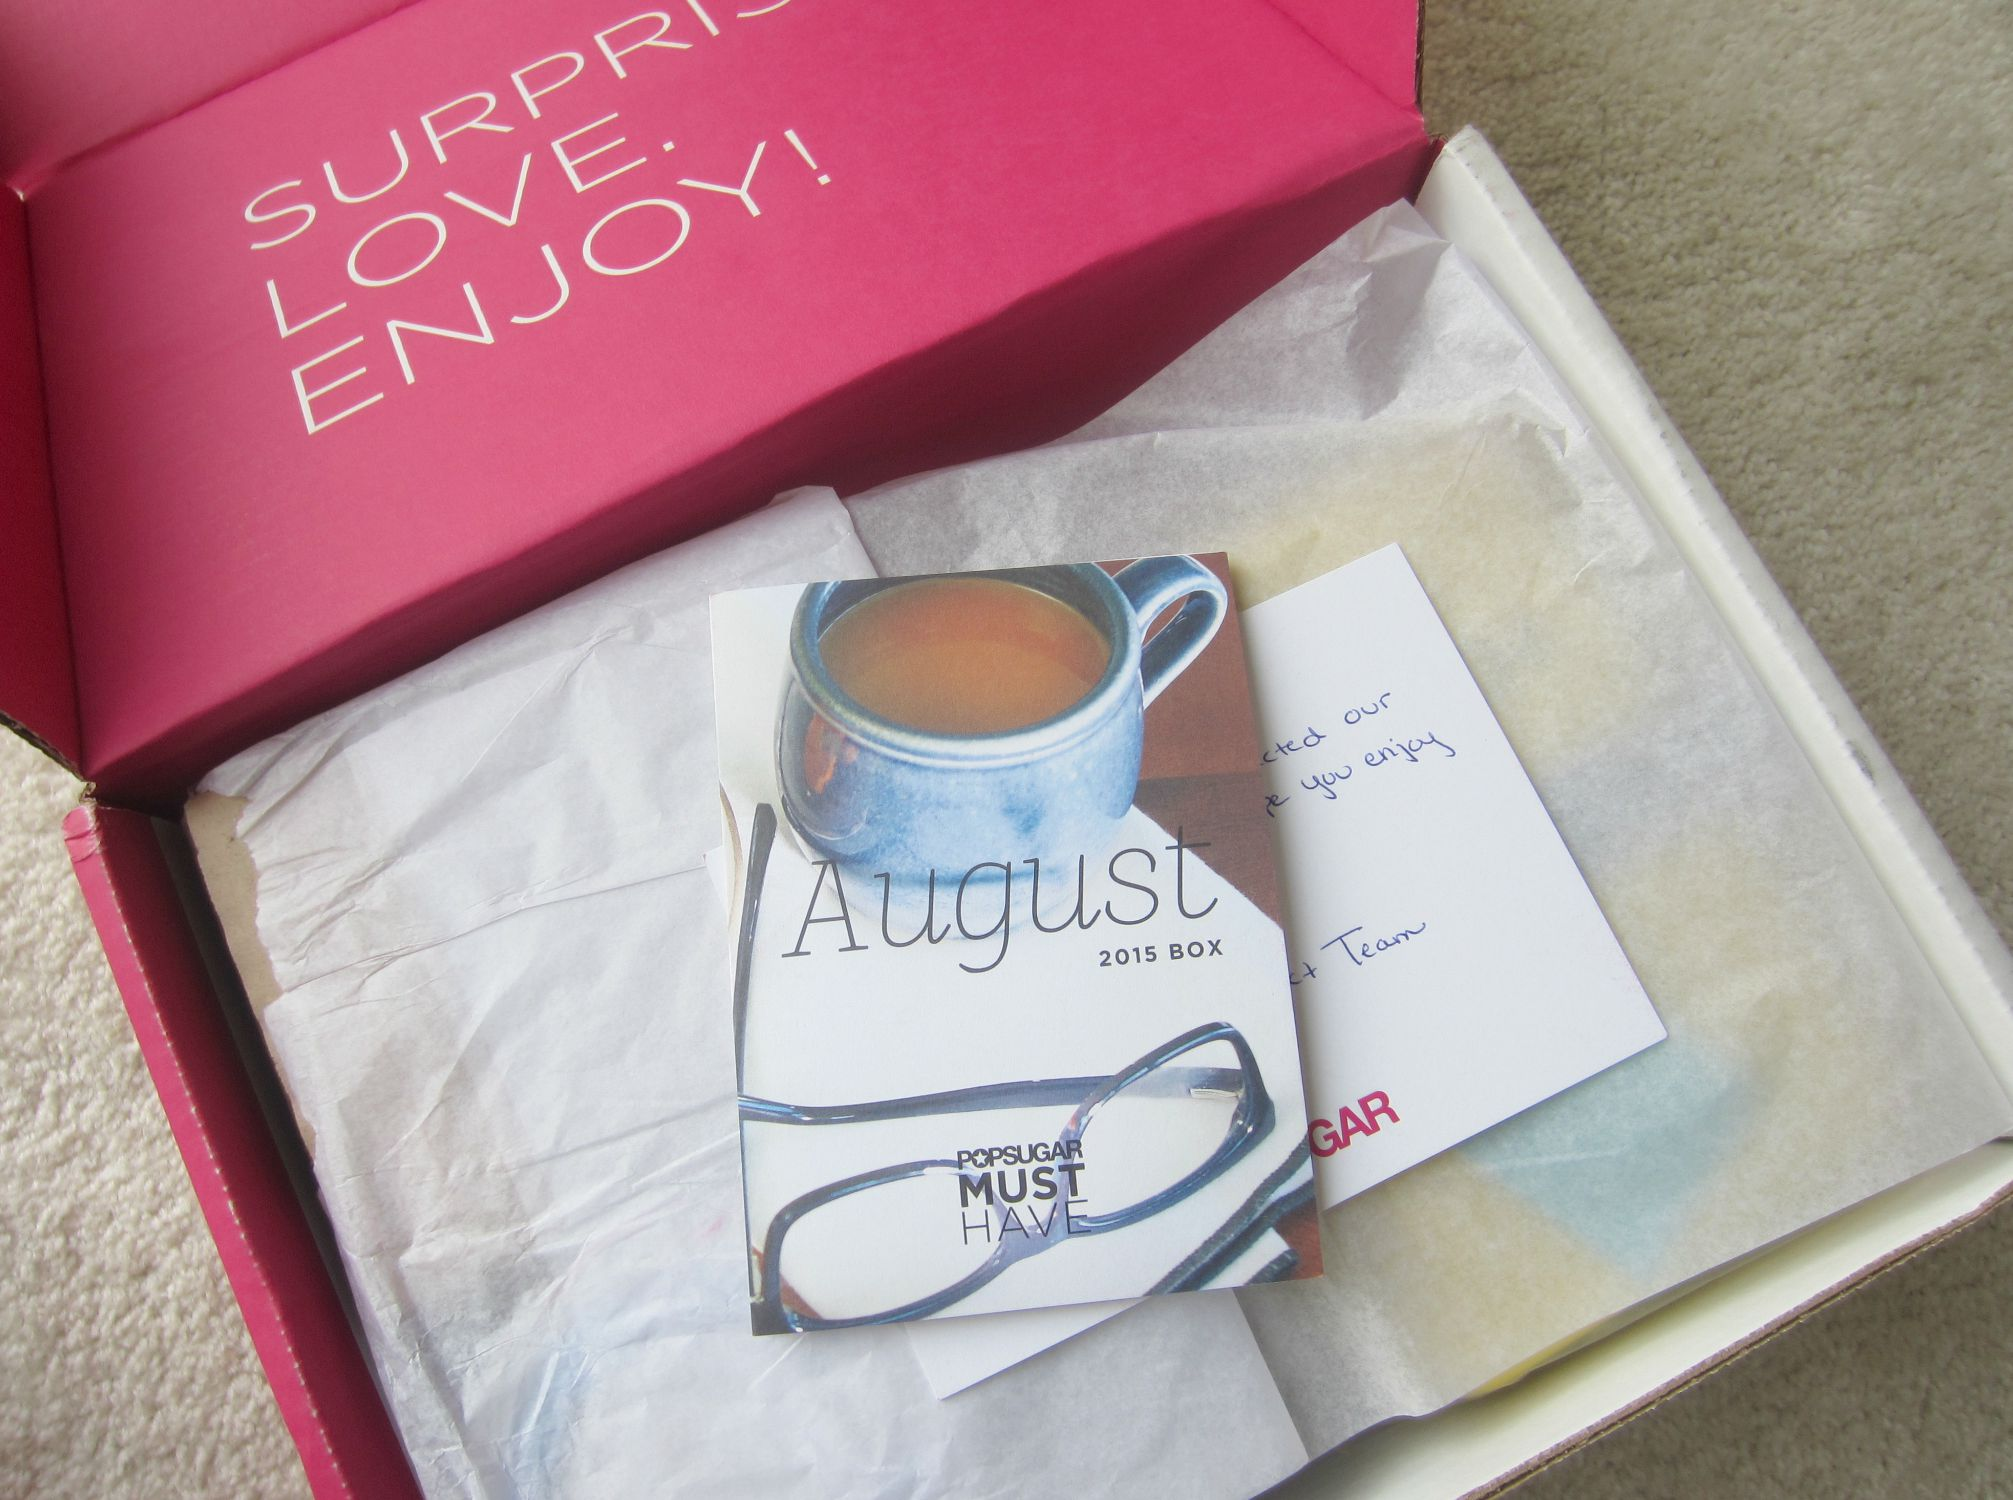 POPSUGAR Must Have Box - August 2015